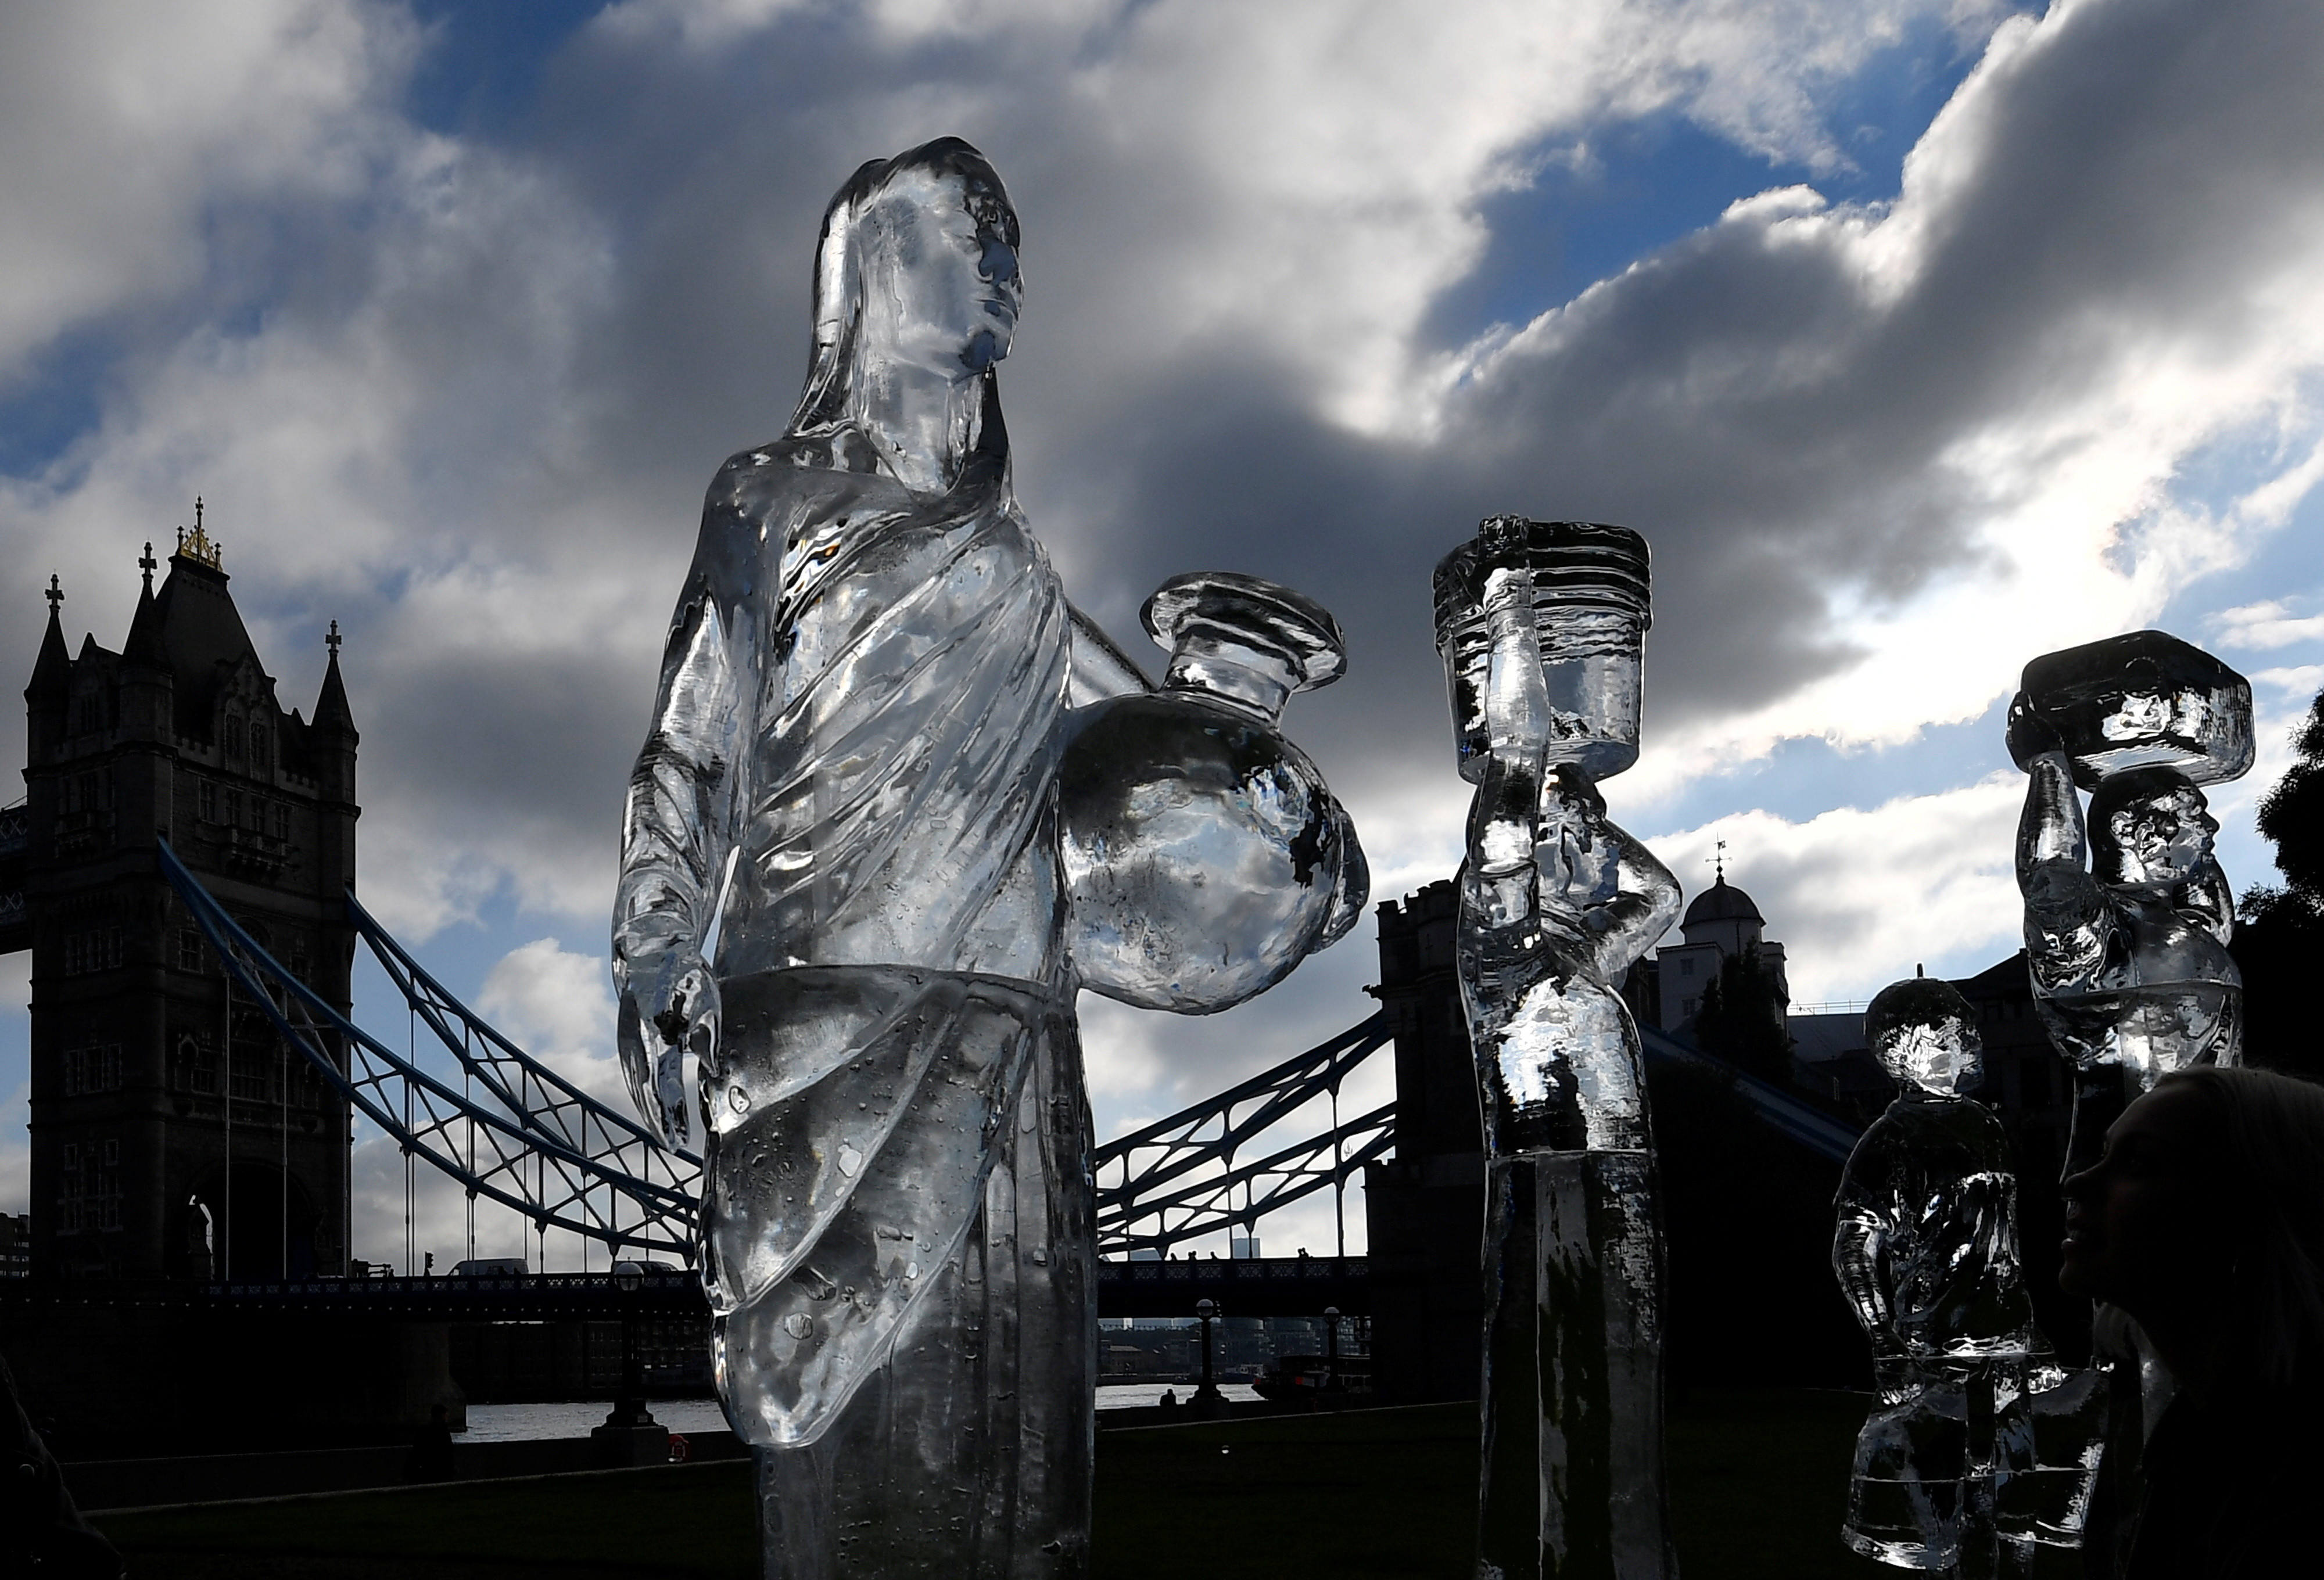 Ice sculptures depicting people walking to collect clean water are seen as environmental and public health campaign group WaterAid highlights the threat posed globally by climate change to healthy water supplies, near Tower Bridge, in London, Britain, September 15, 2021. REUTERS/Toby Melville - RC28QP9HEO58